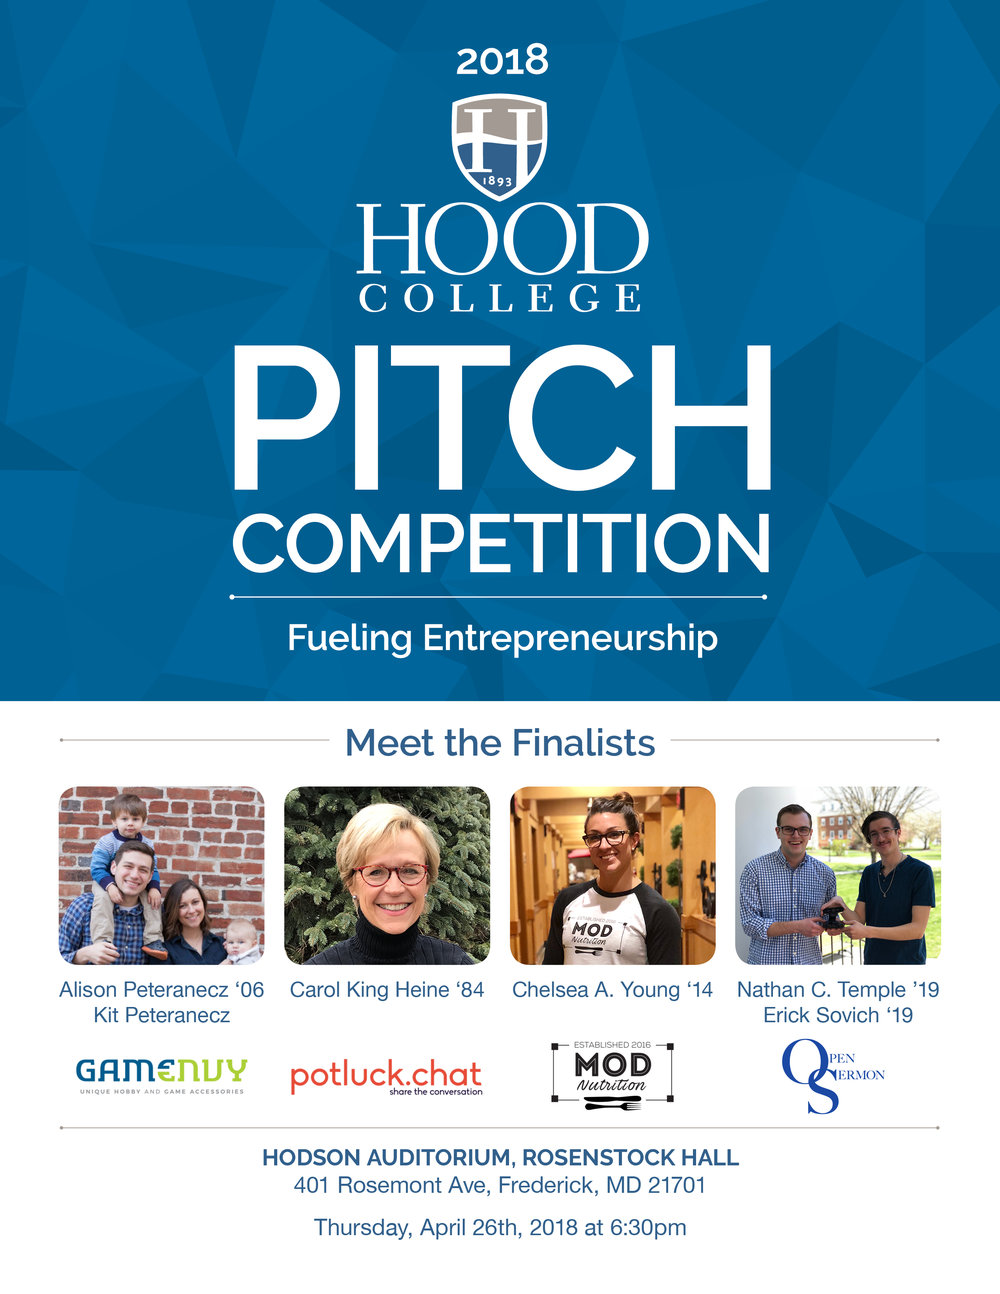 HOOD COLLEGE Pitch Competition Flyer 2018.jpg